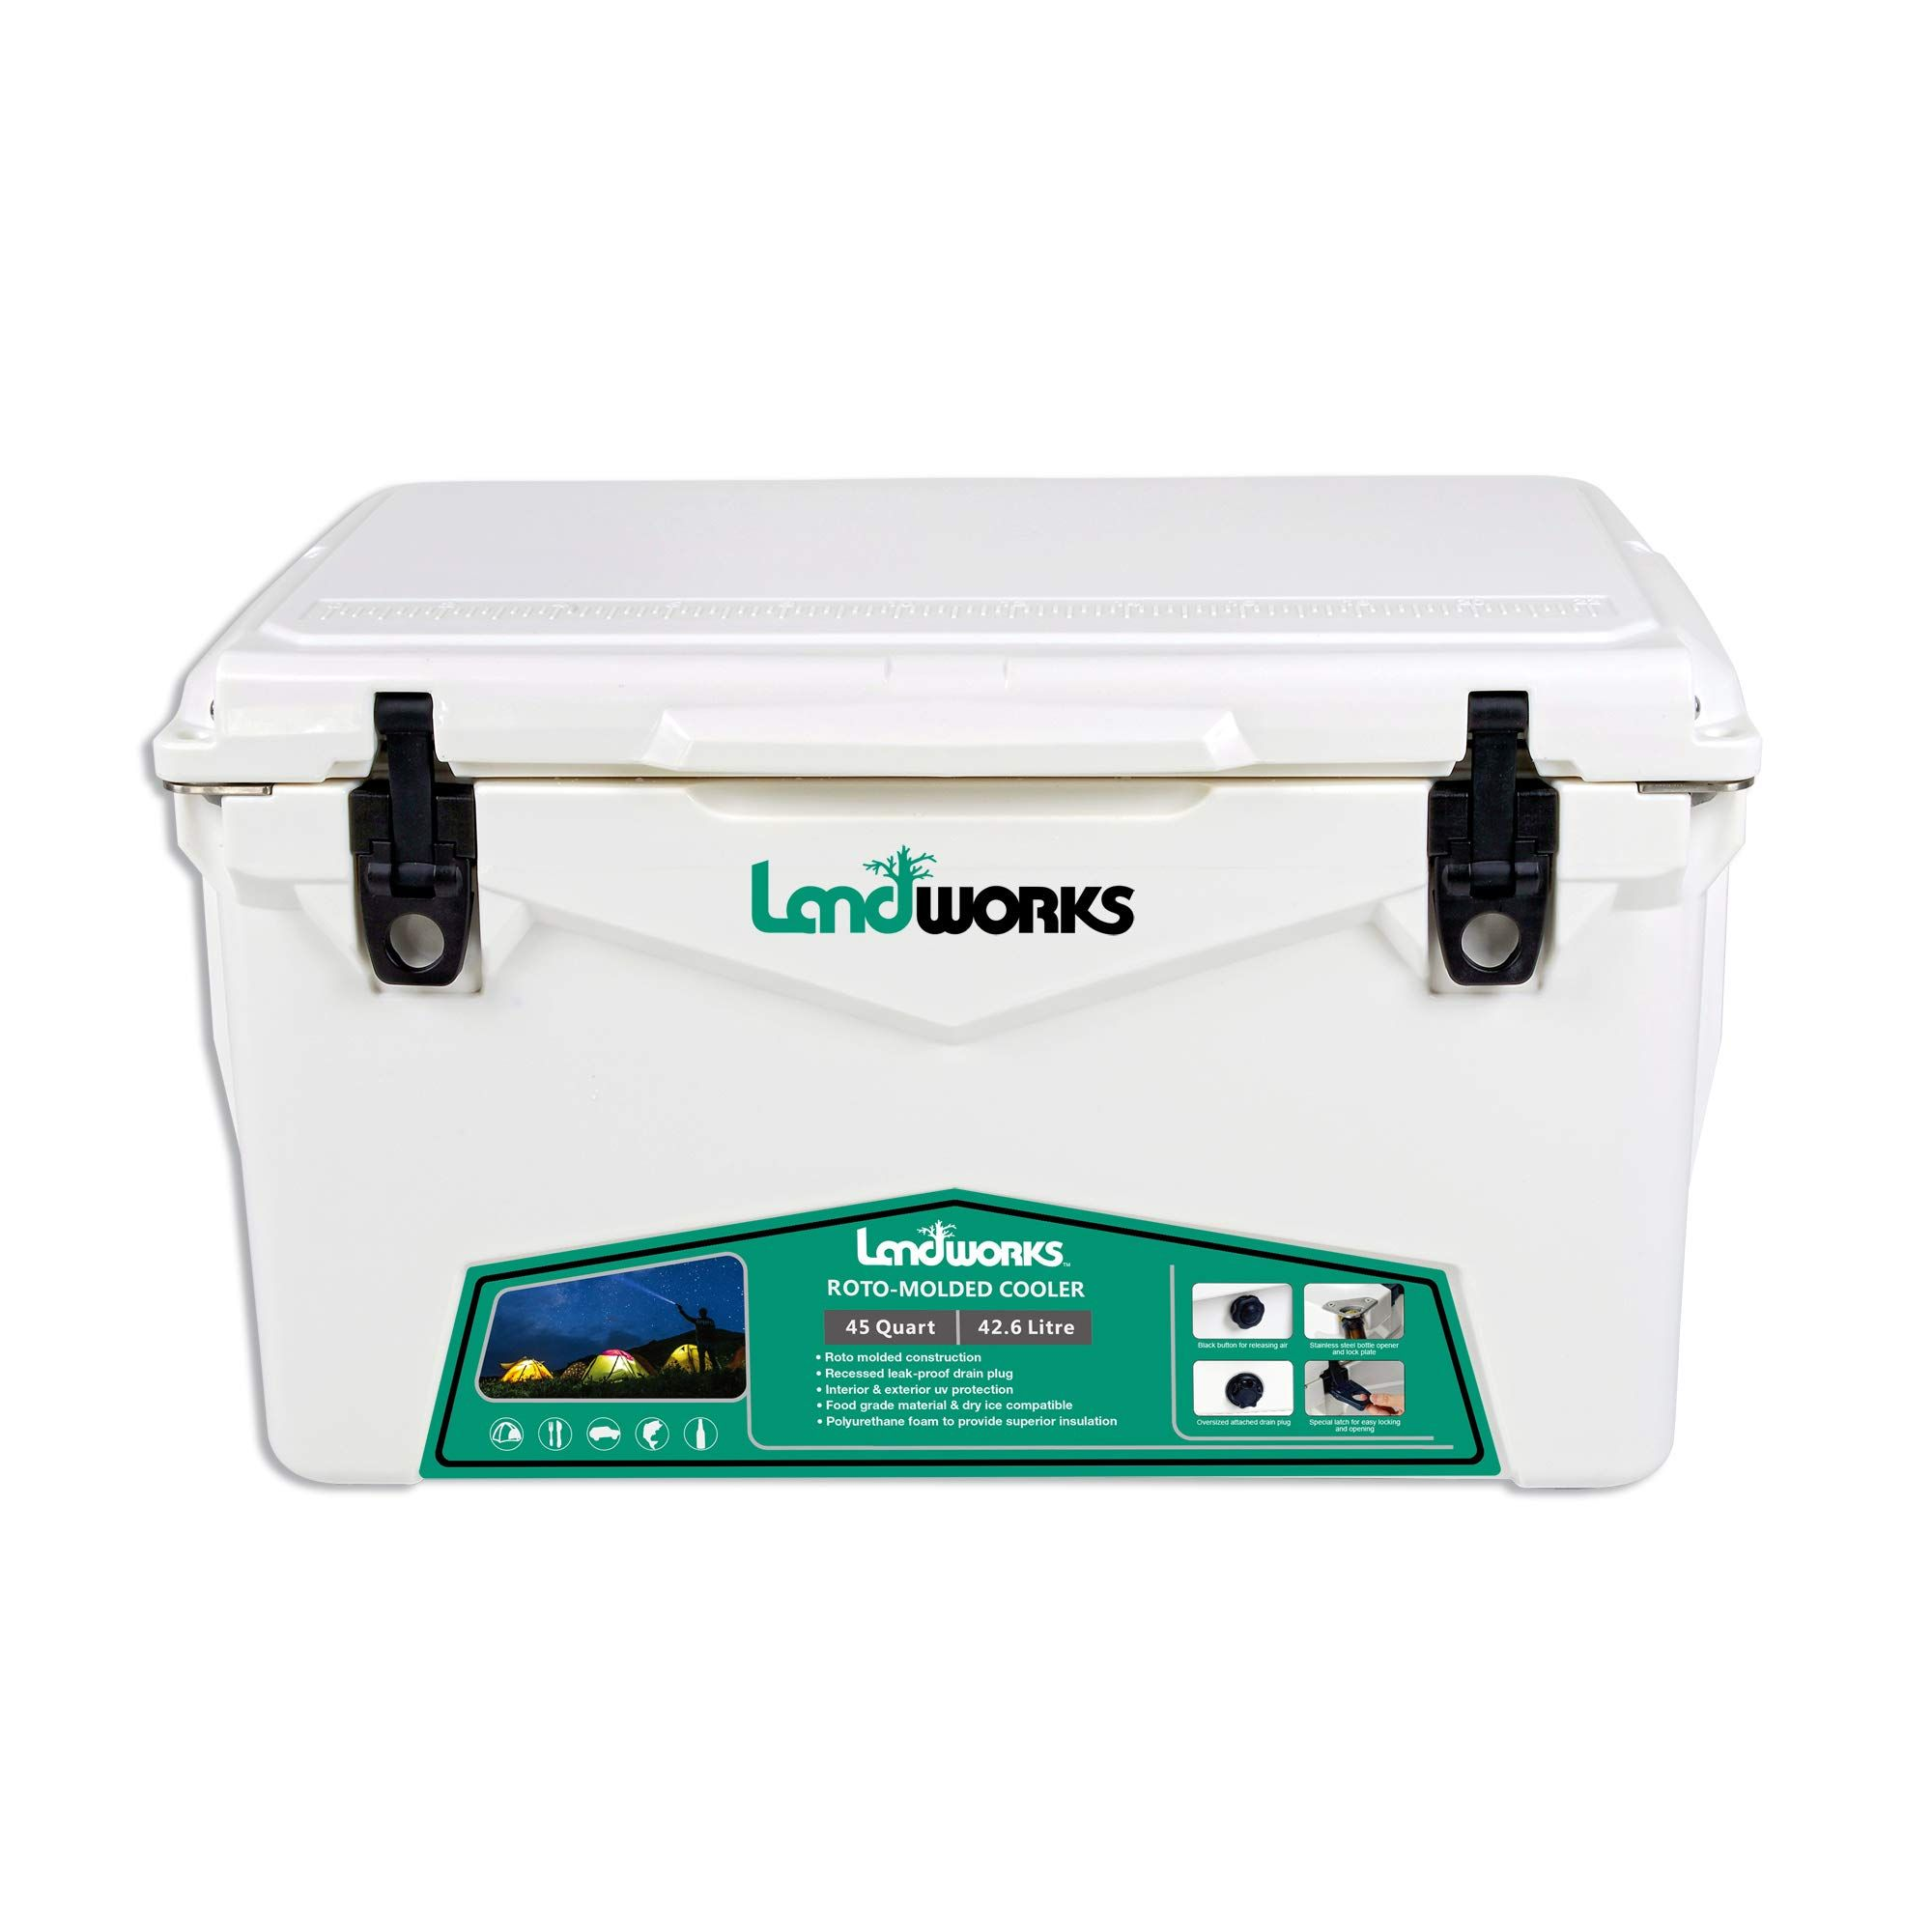 Landworks Rotomolded Enhanced Ice Cooler 45qt 510 Day Ice Retention Commercial Grade Food Safe Dry Ice Compatible Uv Pro Camping Hiking Ice Cooler Dry Ice